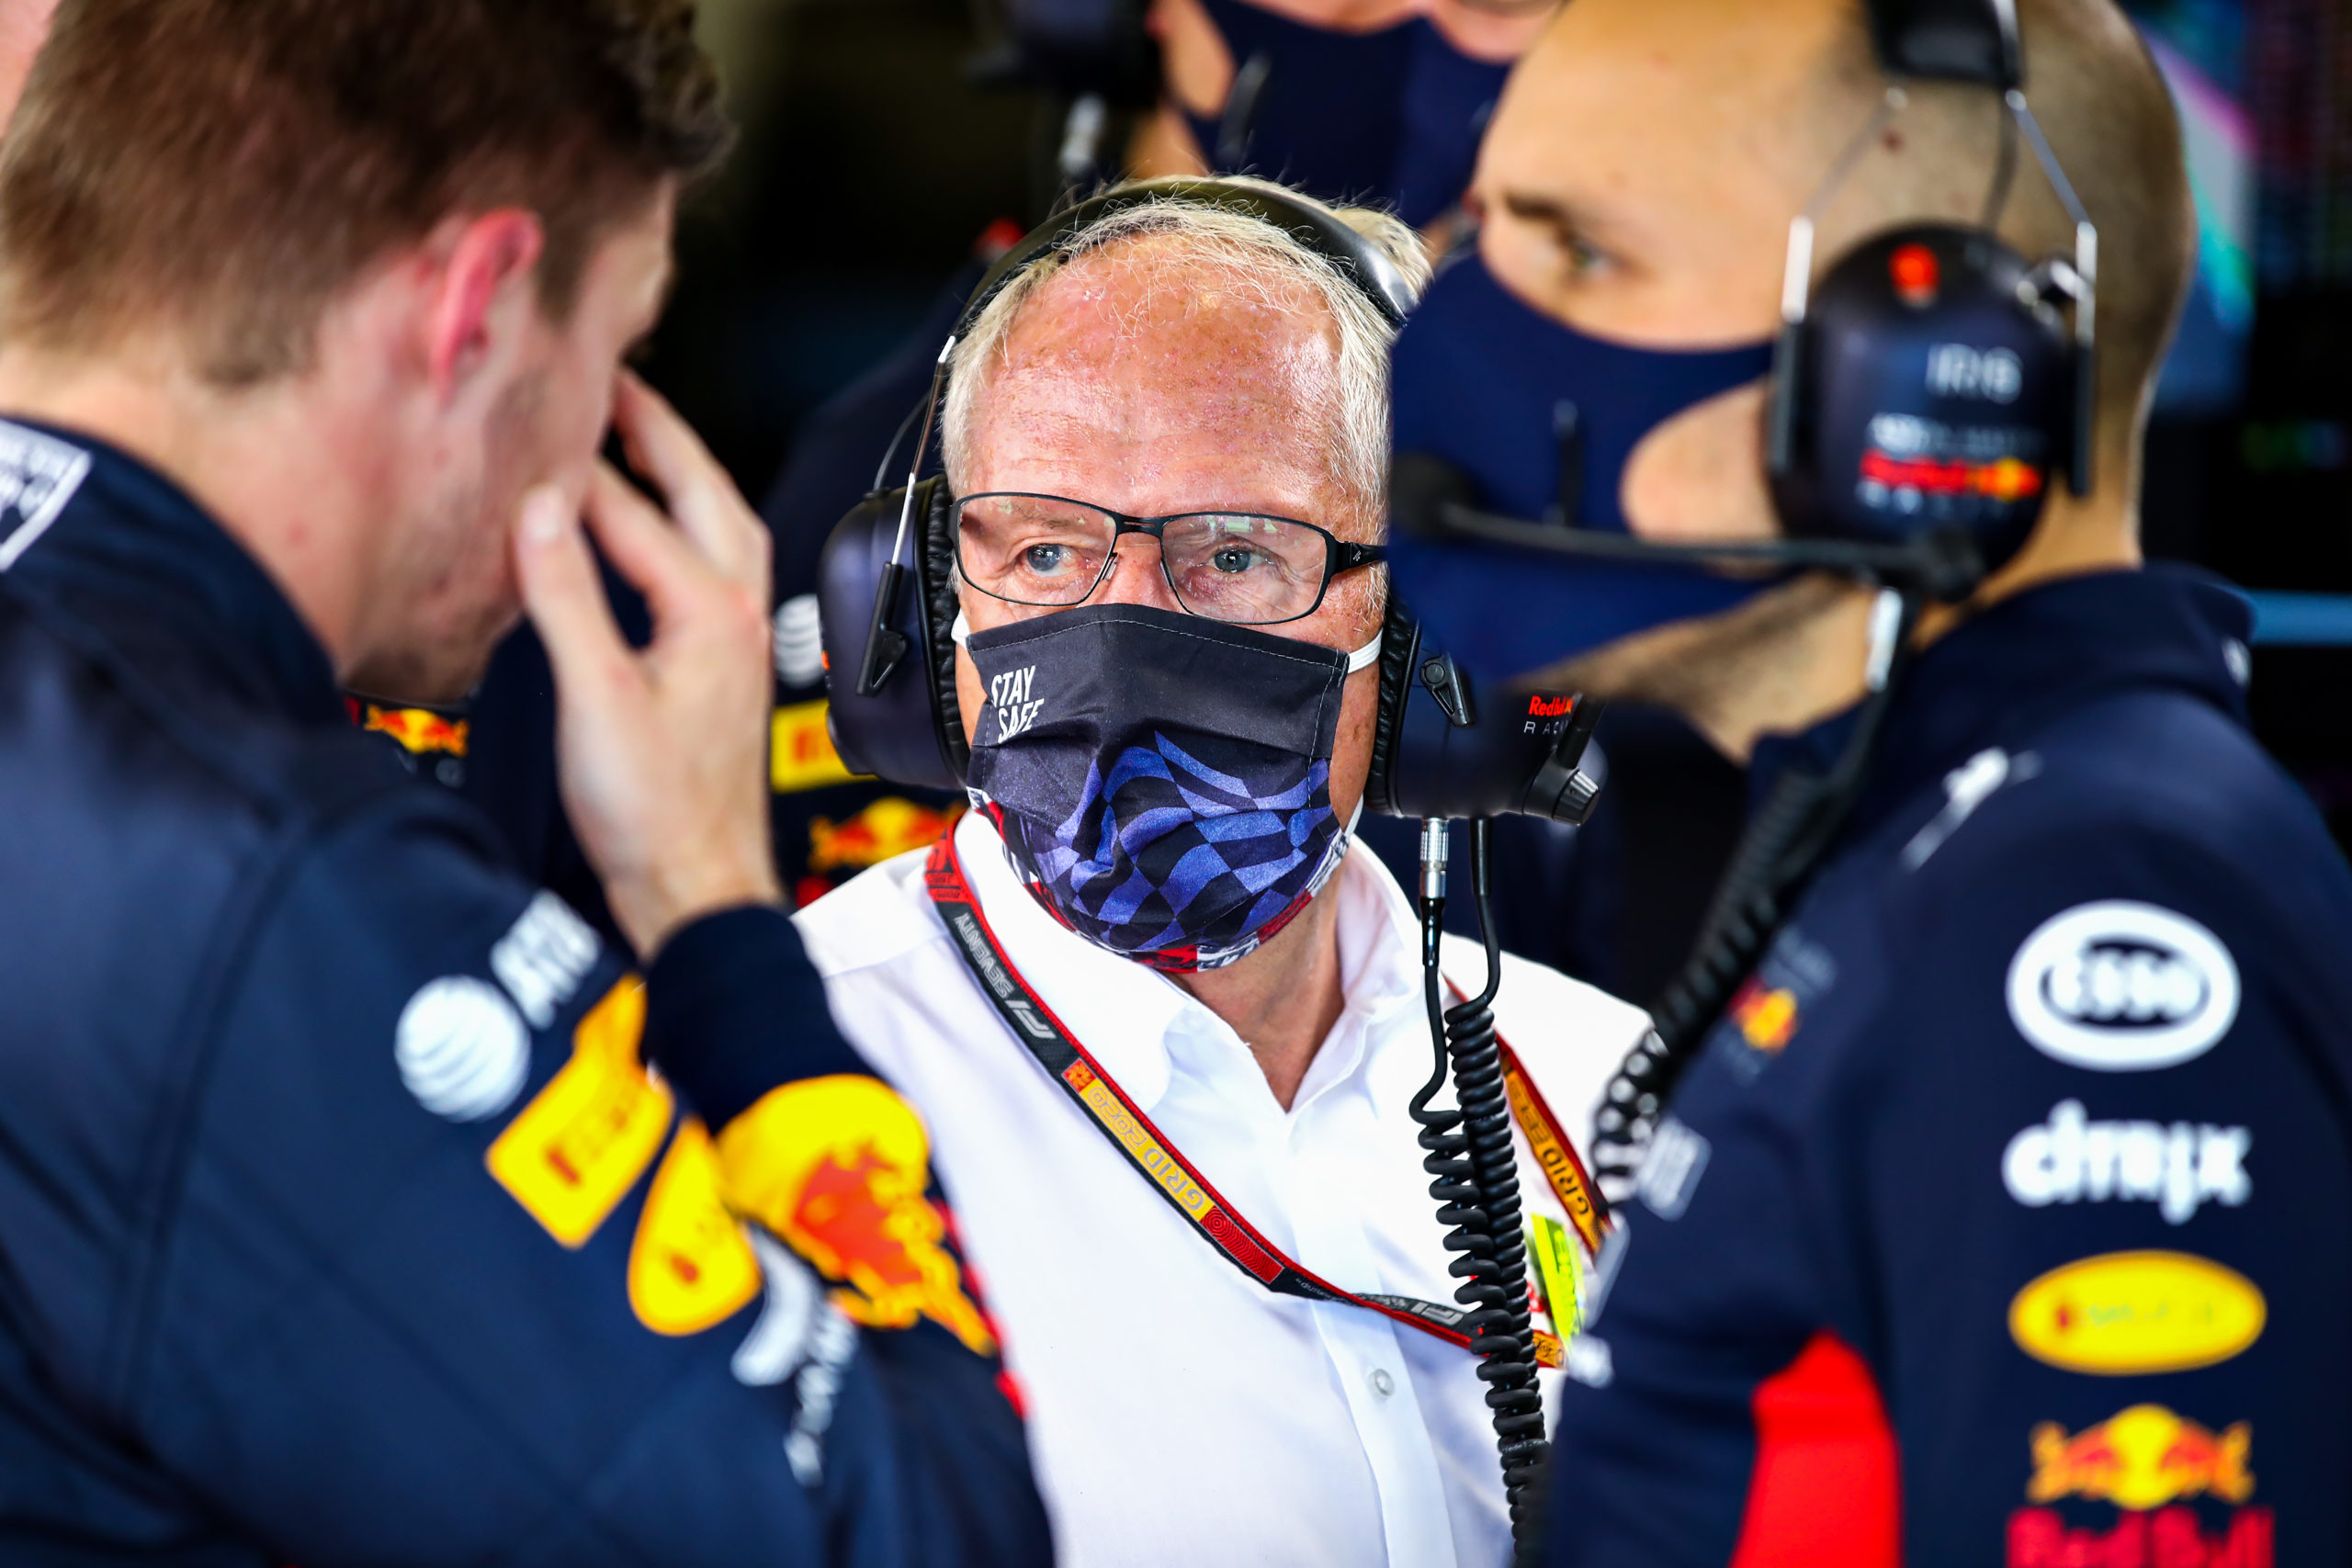 NORTHAMPTON, ENGLAND - AUGUST 08: Red Bull Racing Team Consultant Dr Helmut Marko looks on in the garage during final practice for the F1 70th Anniversary Grand Prix at Silverstone on August 08, 2020 in Northampton, England. (Photo by Mark Thompson/Getty Images) // Getty Images / Red Bull Content Pool  // AP-24VKTC6F11W11 // Usage for editorial use only //